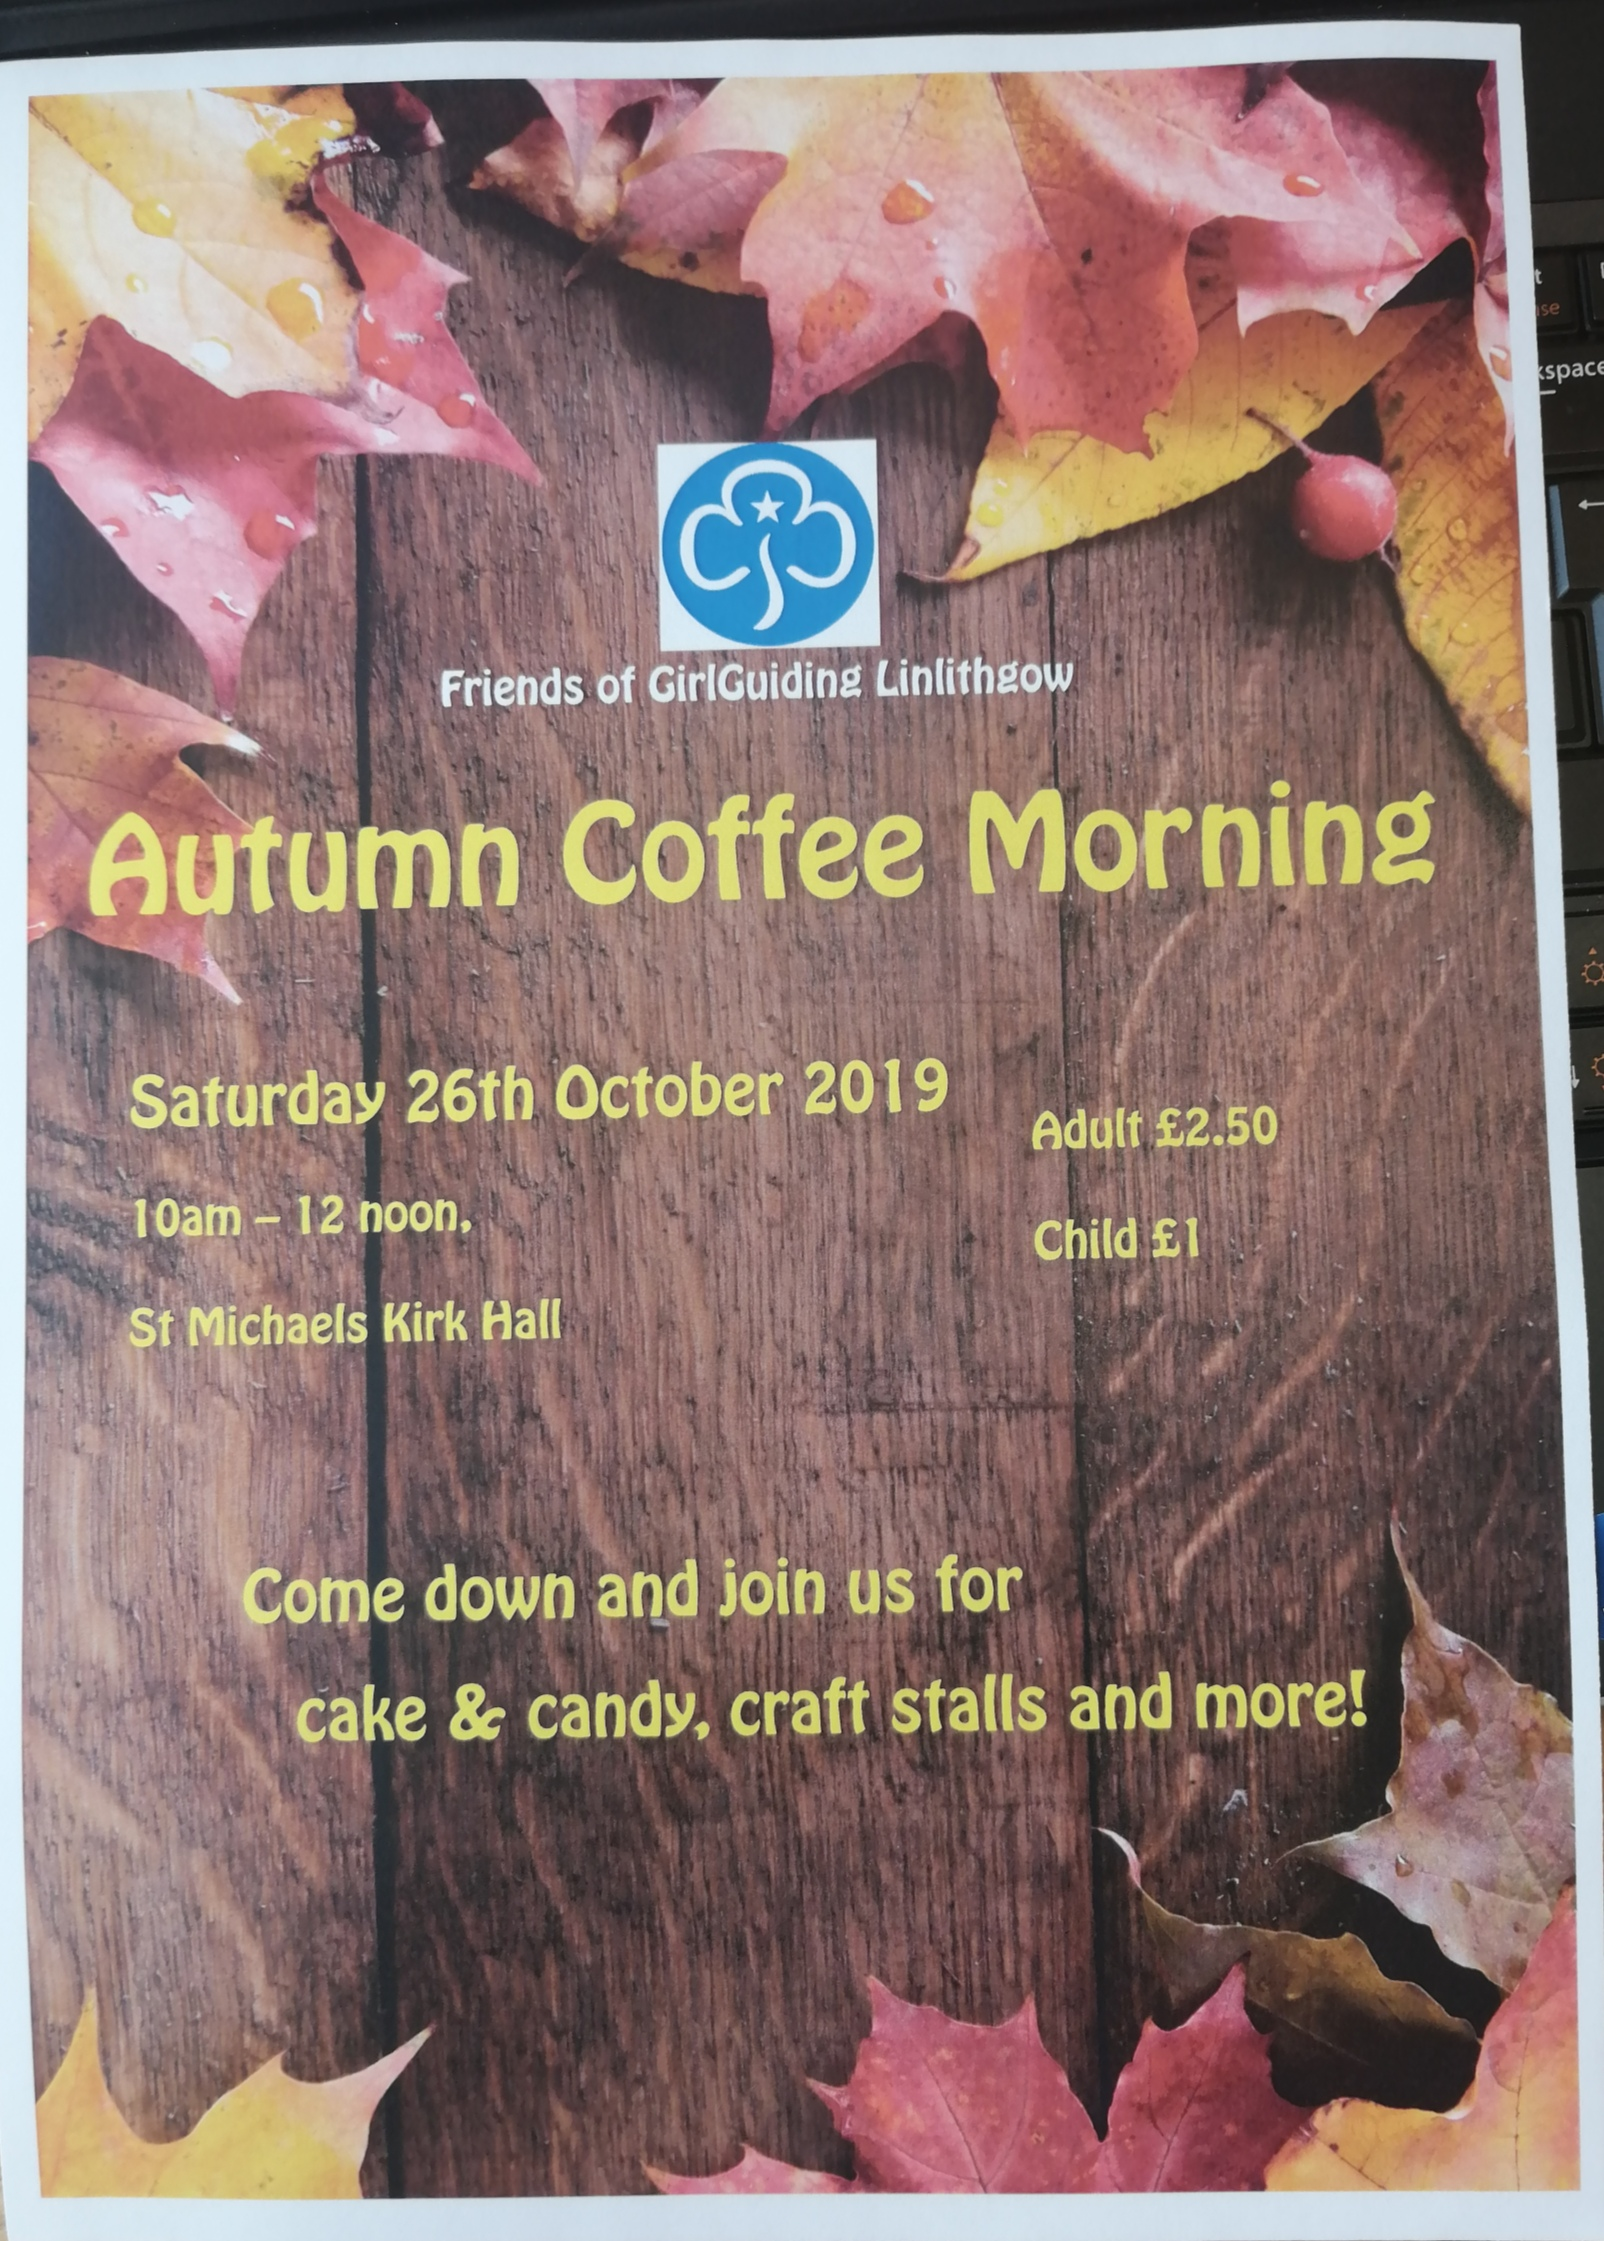 Autumn Coffee Morning